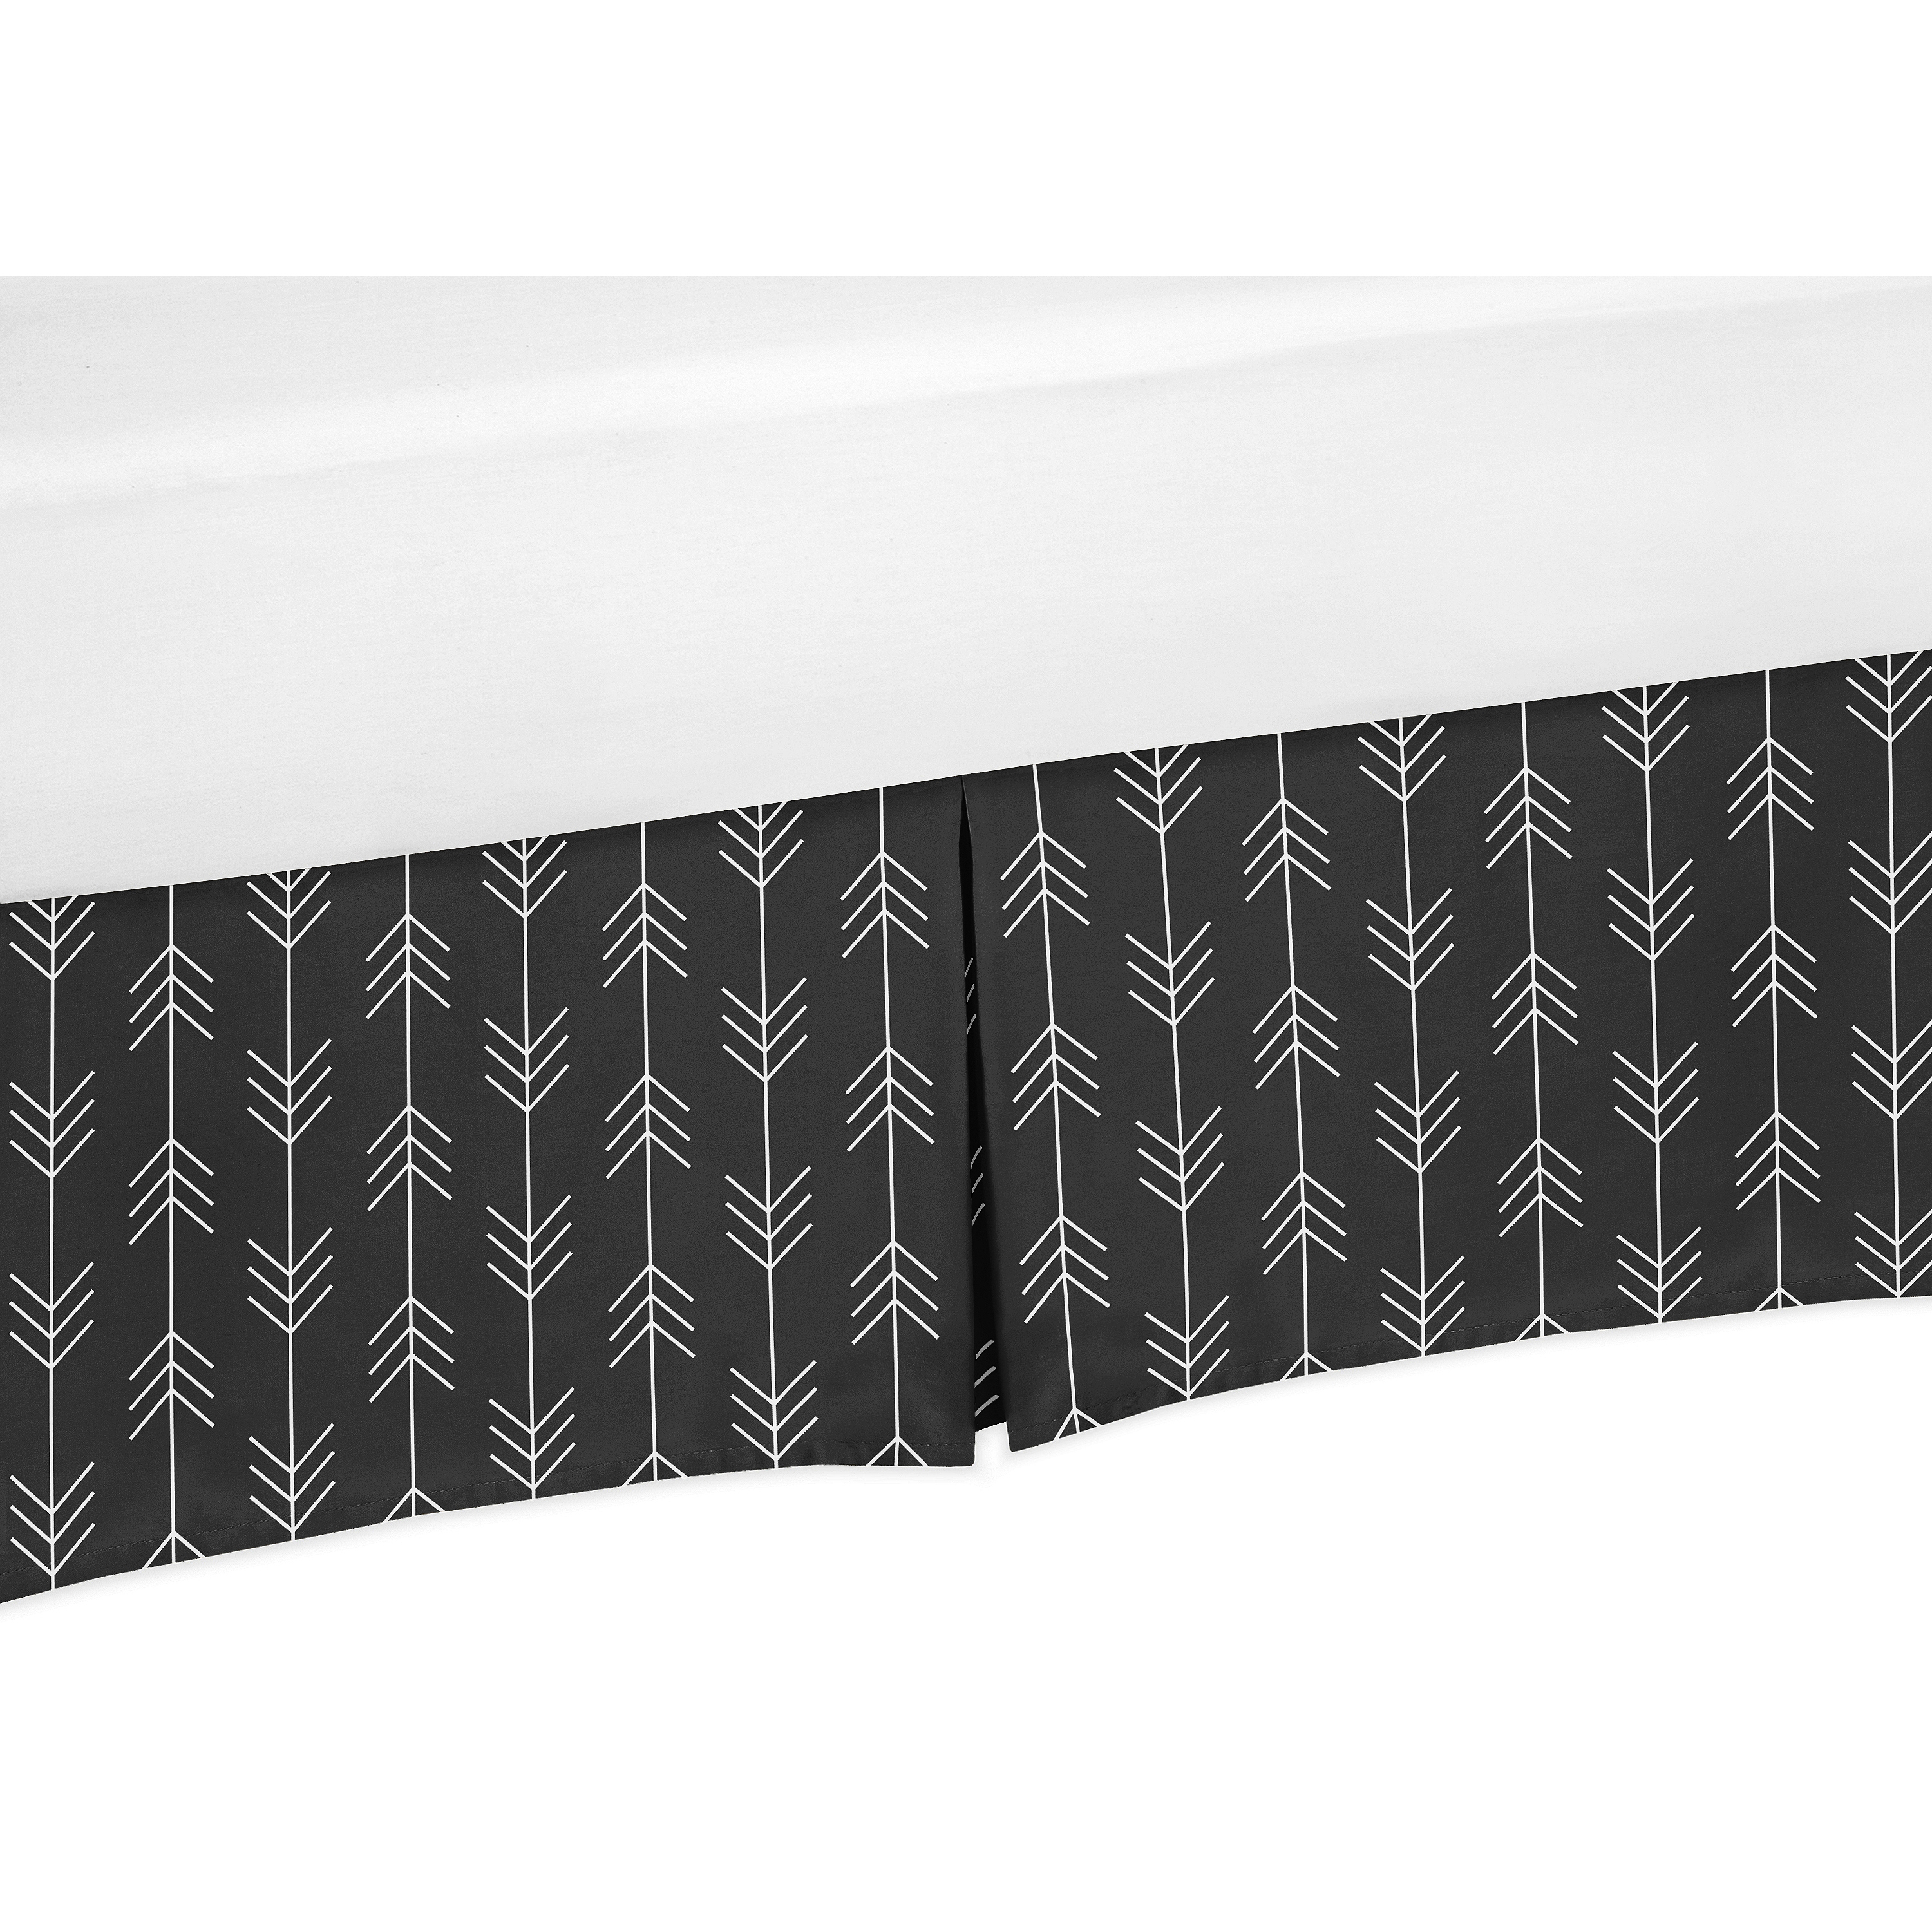 Black And White Woodland Arrow Baby Boy Pleated Crib Bed Skirt Dust Ruffle For Rustic Patch Collection By Sweet Jojo Designs Walmart Com Walmart Com